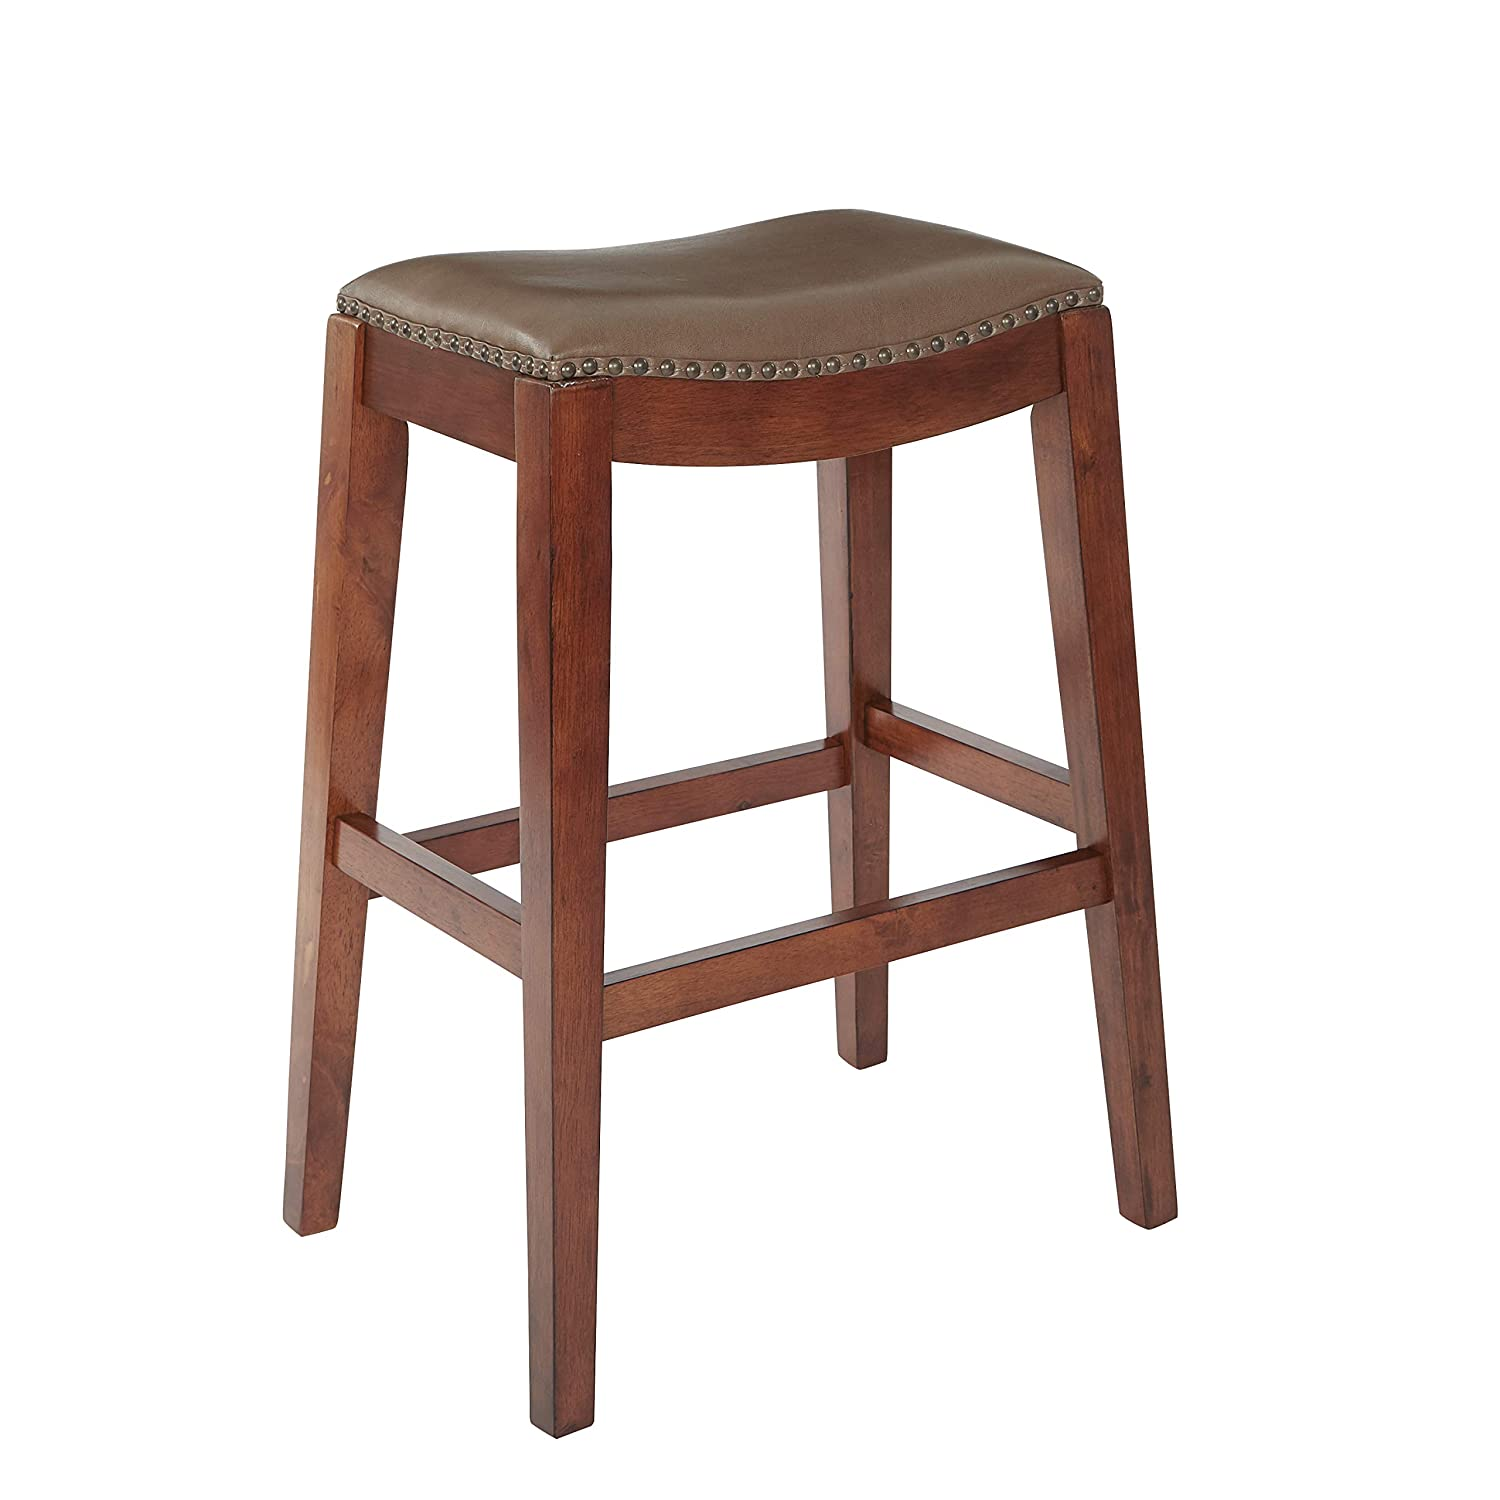 OSP Designs Metro Bonded Leather Counter-Height Saddle Stool with Nail Head Accents and Espresso Finished Legs, 24-Inch, Cranberry Office Star Products MET1524-BD22